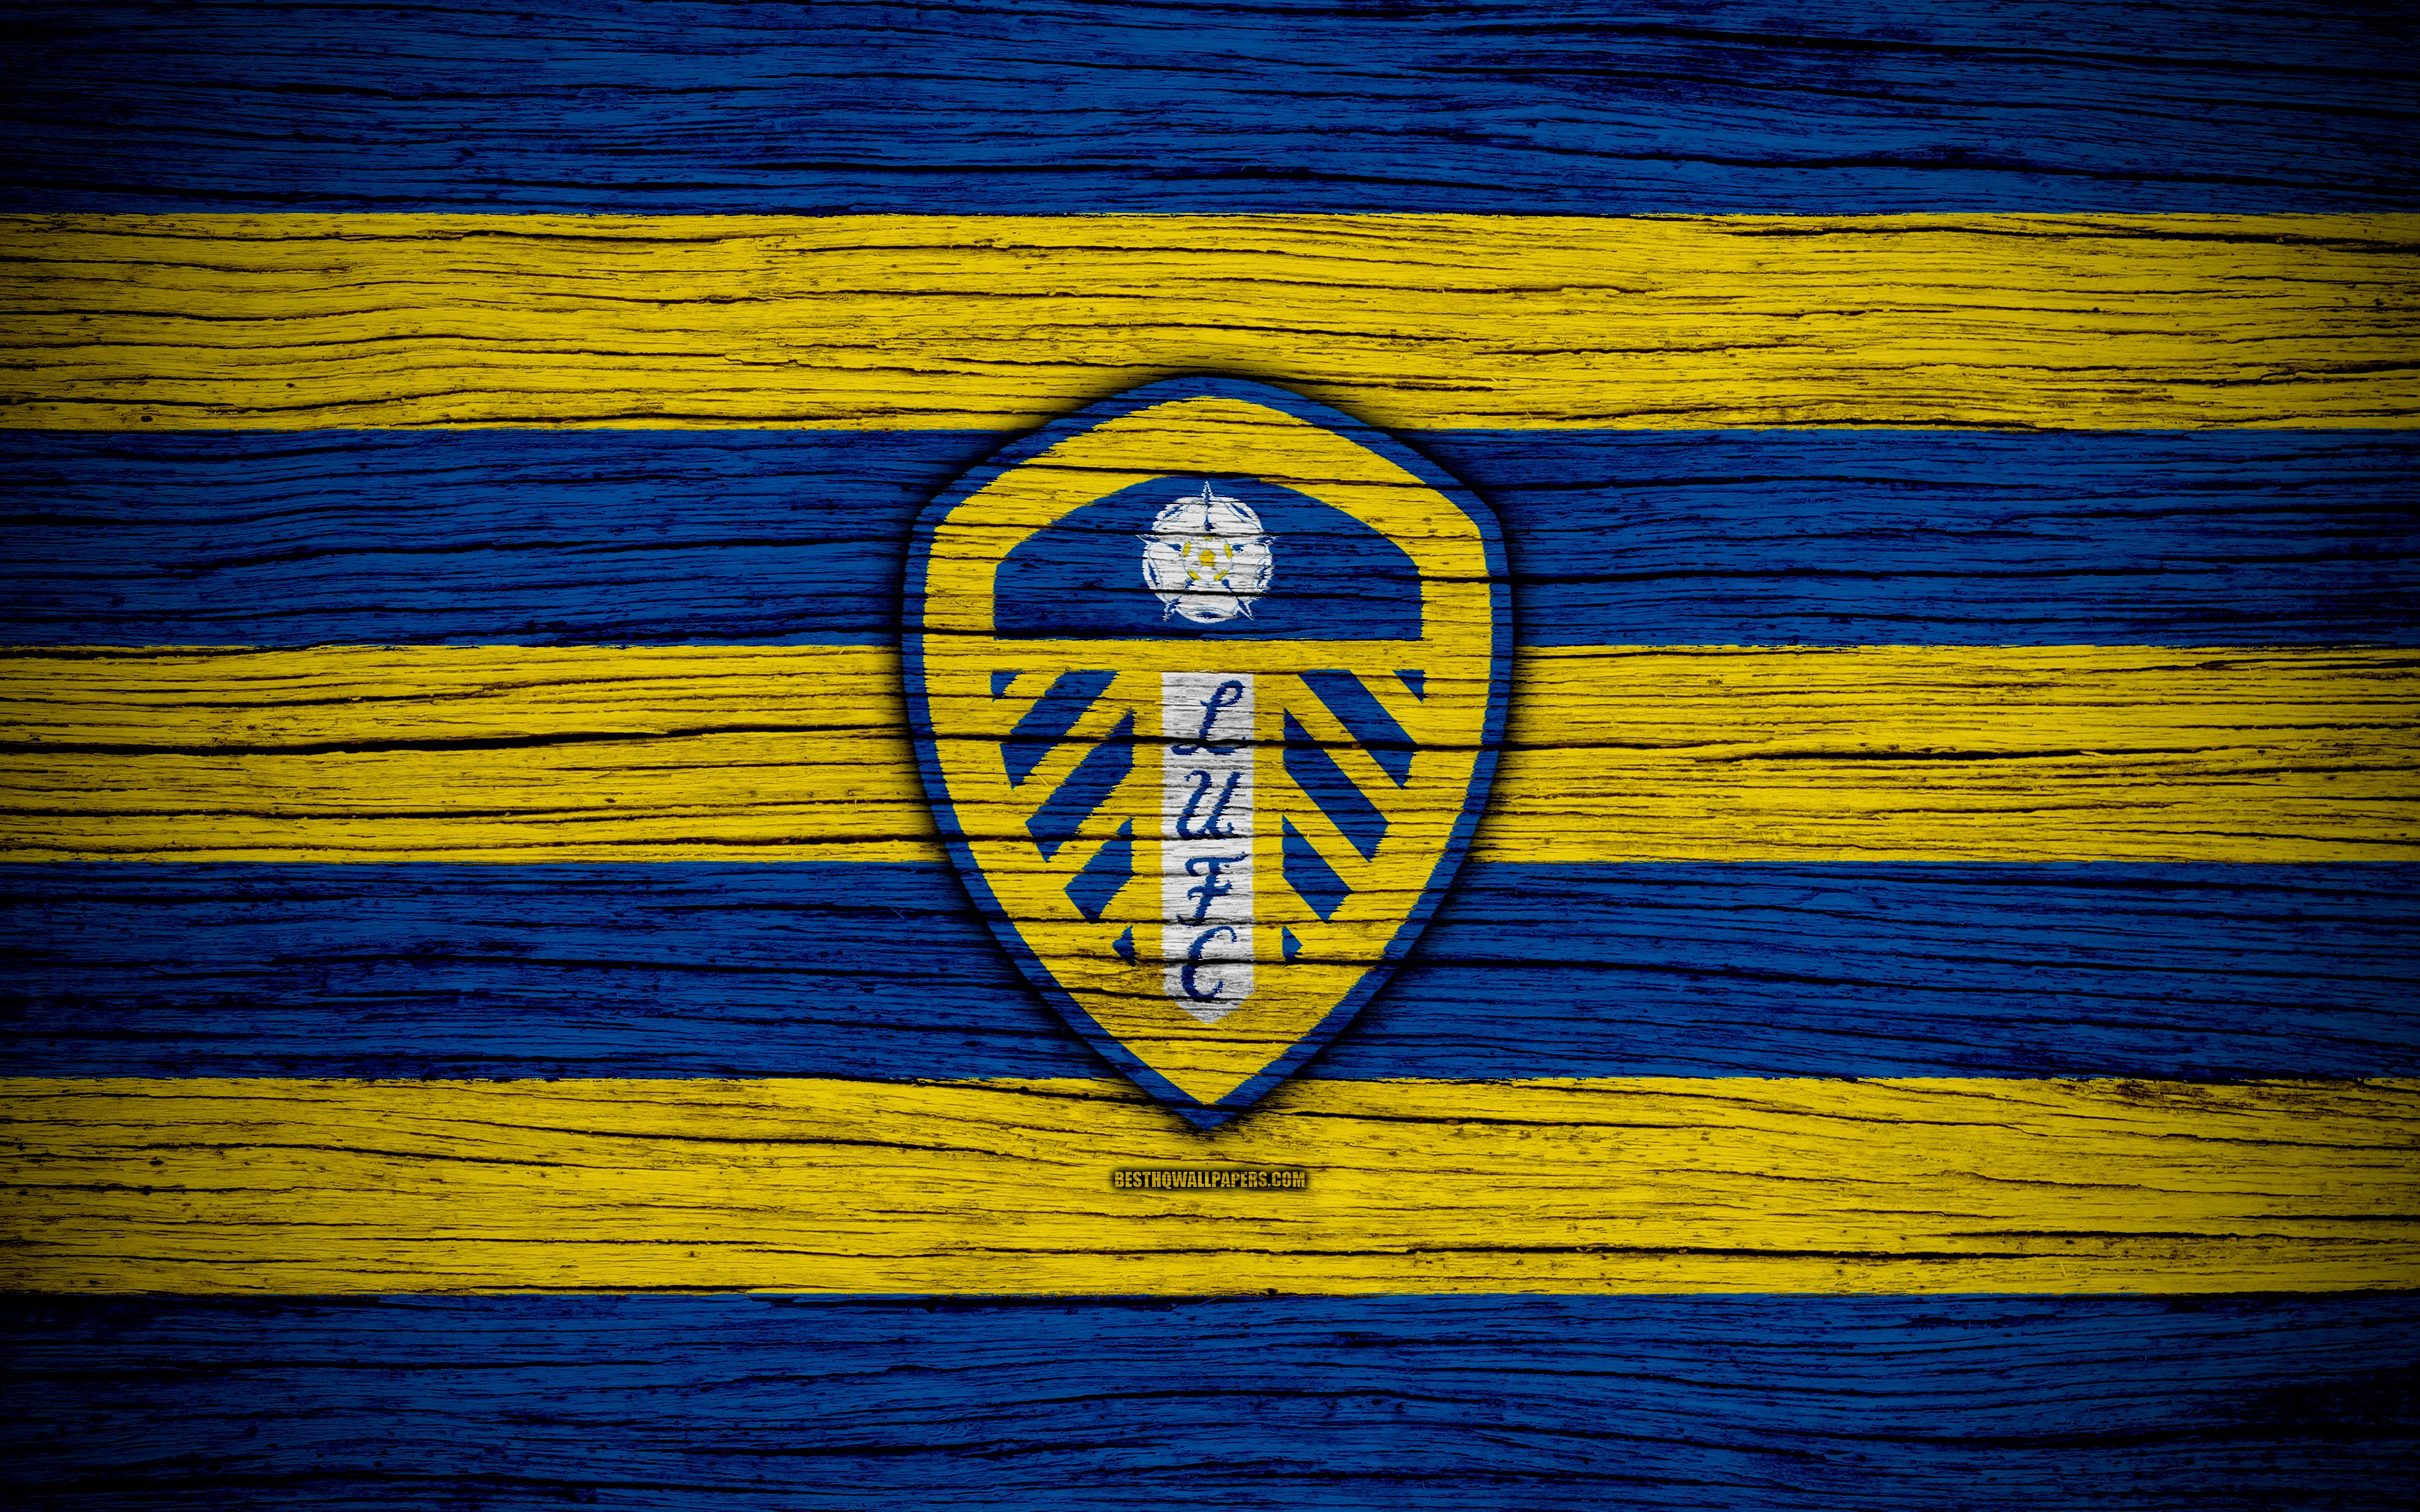 Leeds United Desktop Wallpapers Wallpaper Cave